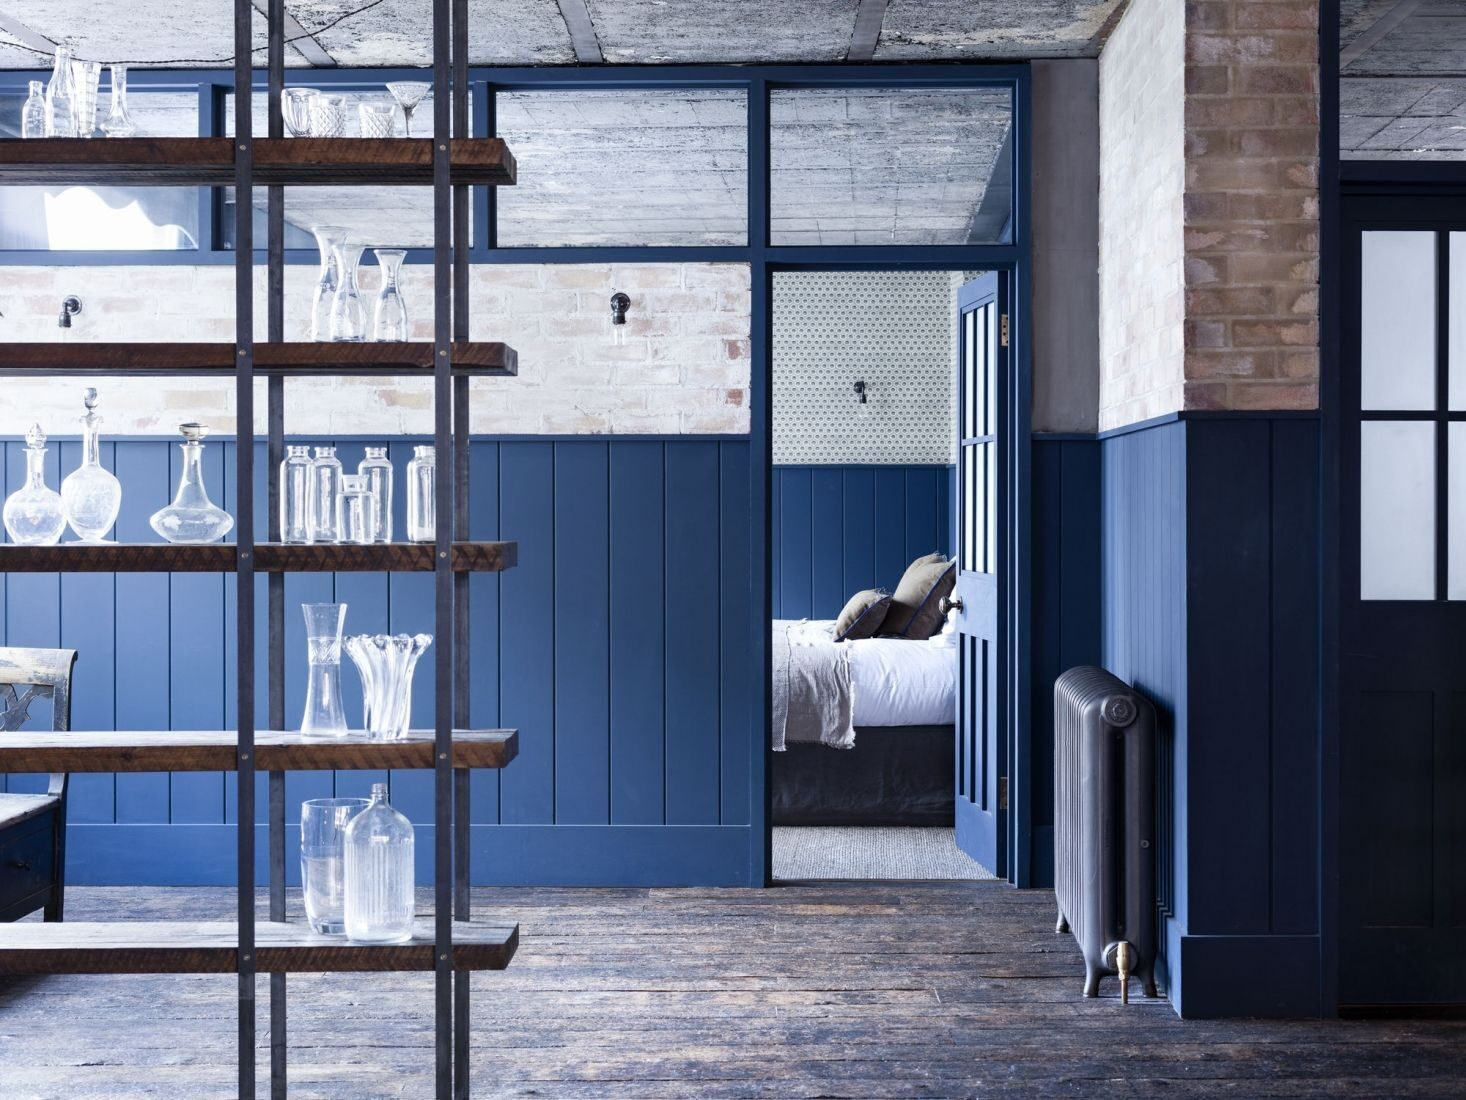 Mark-Lewis-Interior-Design-Hoxton-Square-loft-blue-and-white-bedroom-tongue-and-groove-paneling-Rory-Gardener-photo-11-1466x1100